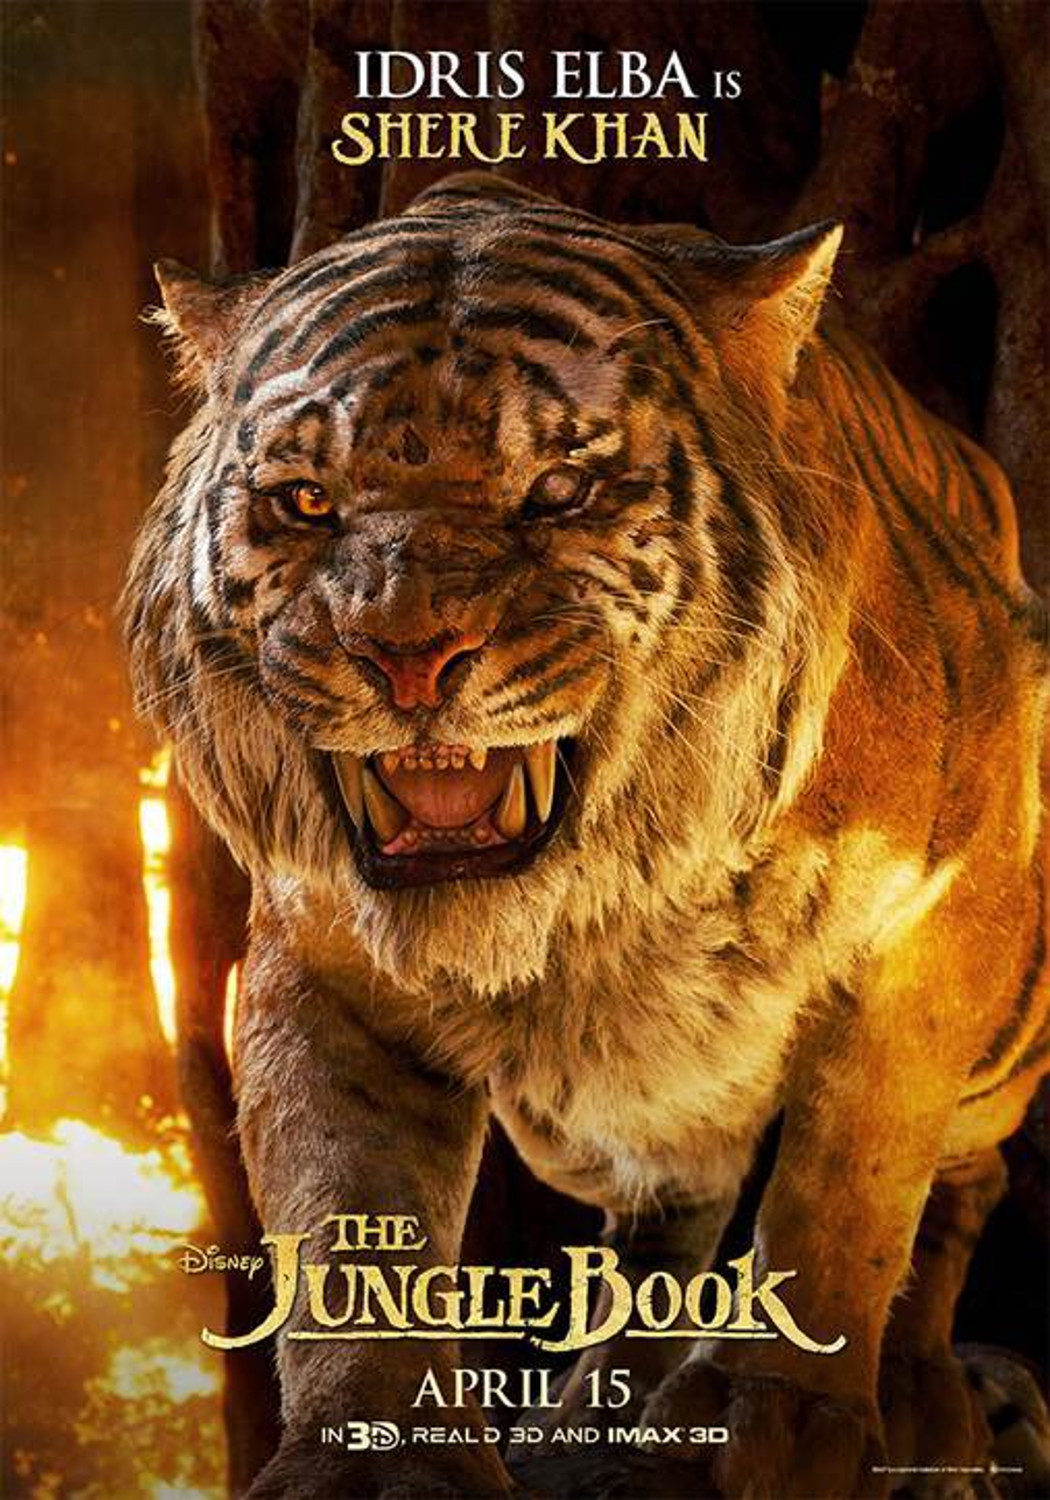 Shere Khan 'The Jungle Book' Poster